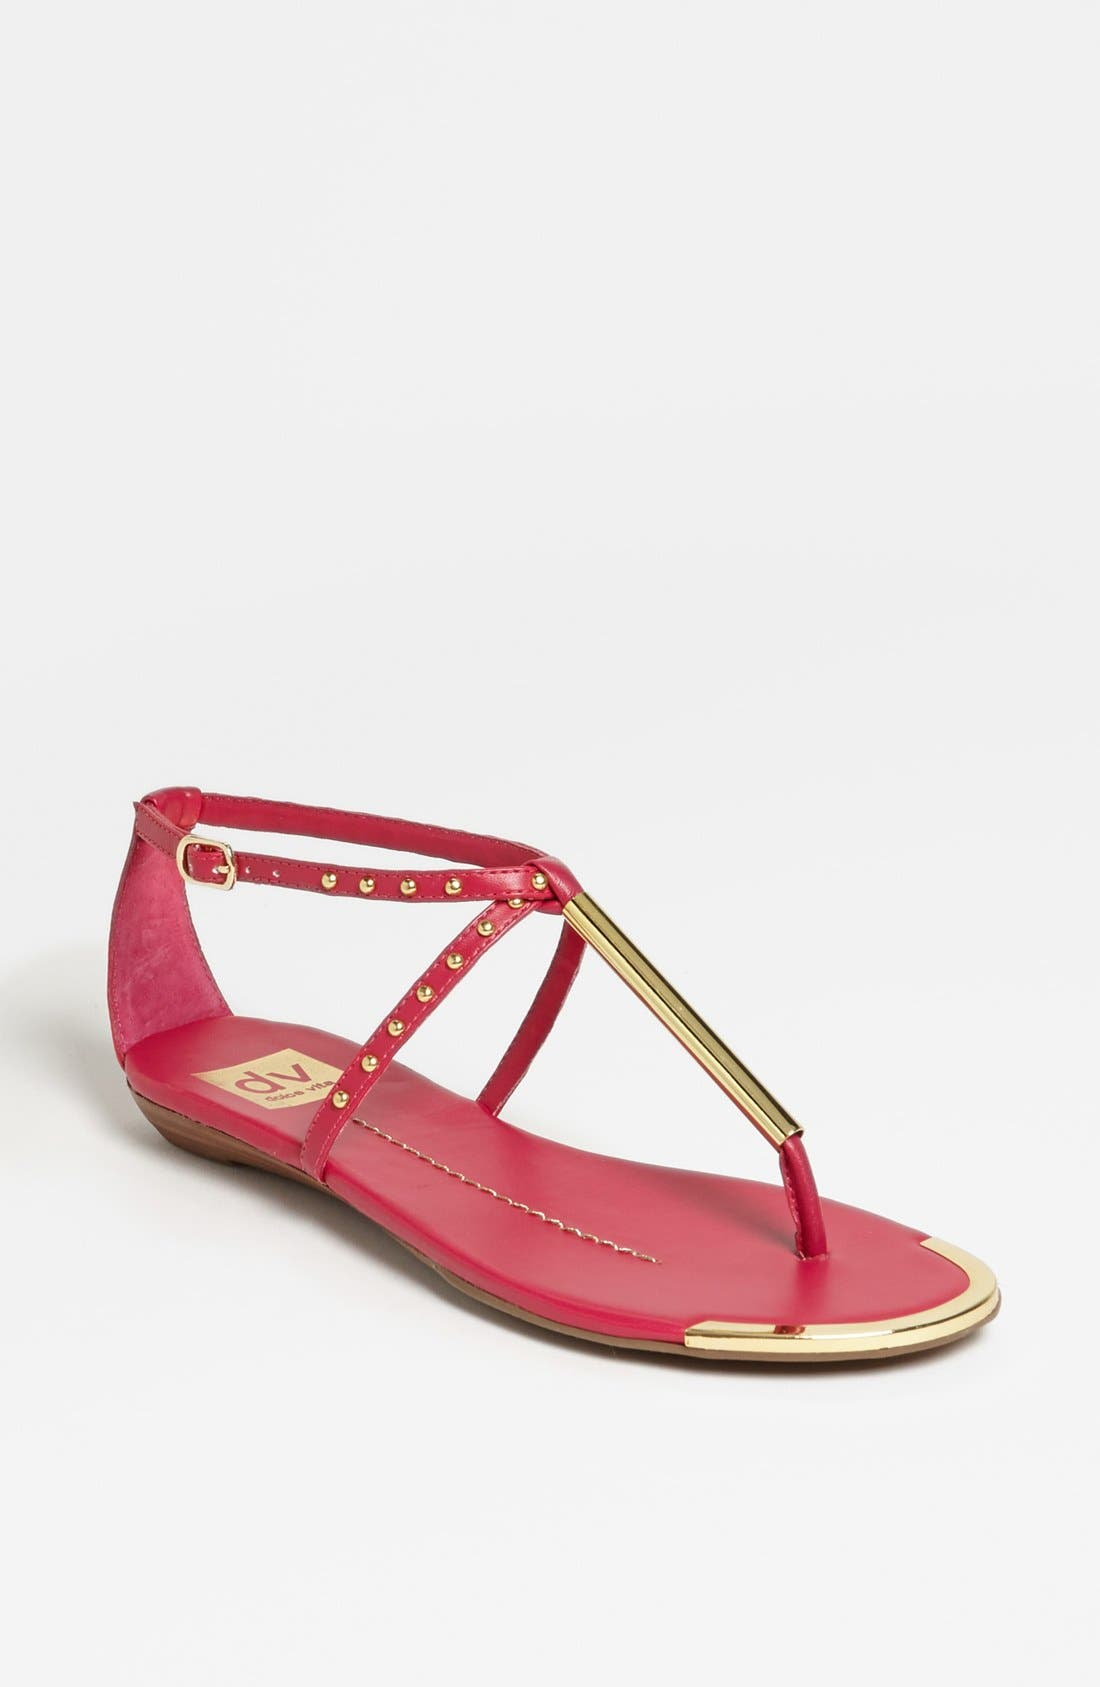 Main Image - DV by Dolce Vita 'Apollo' Sandal